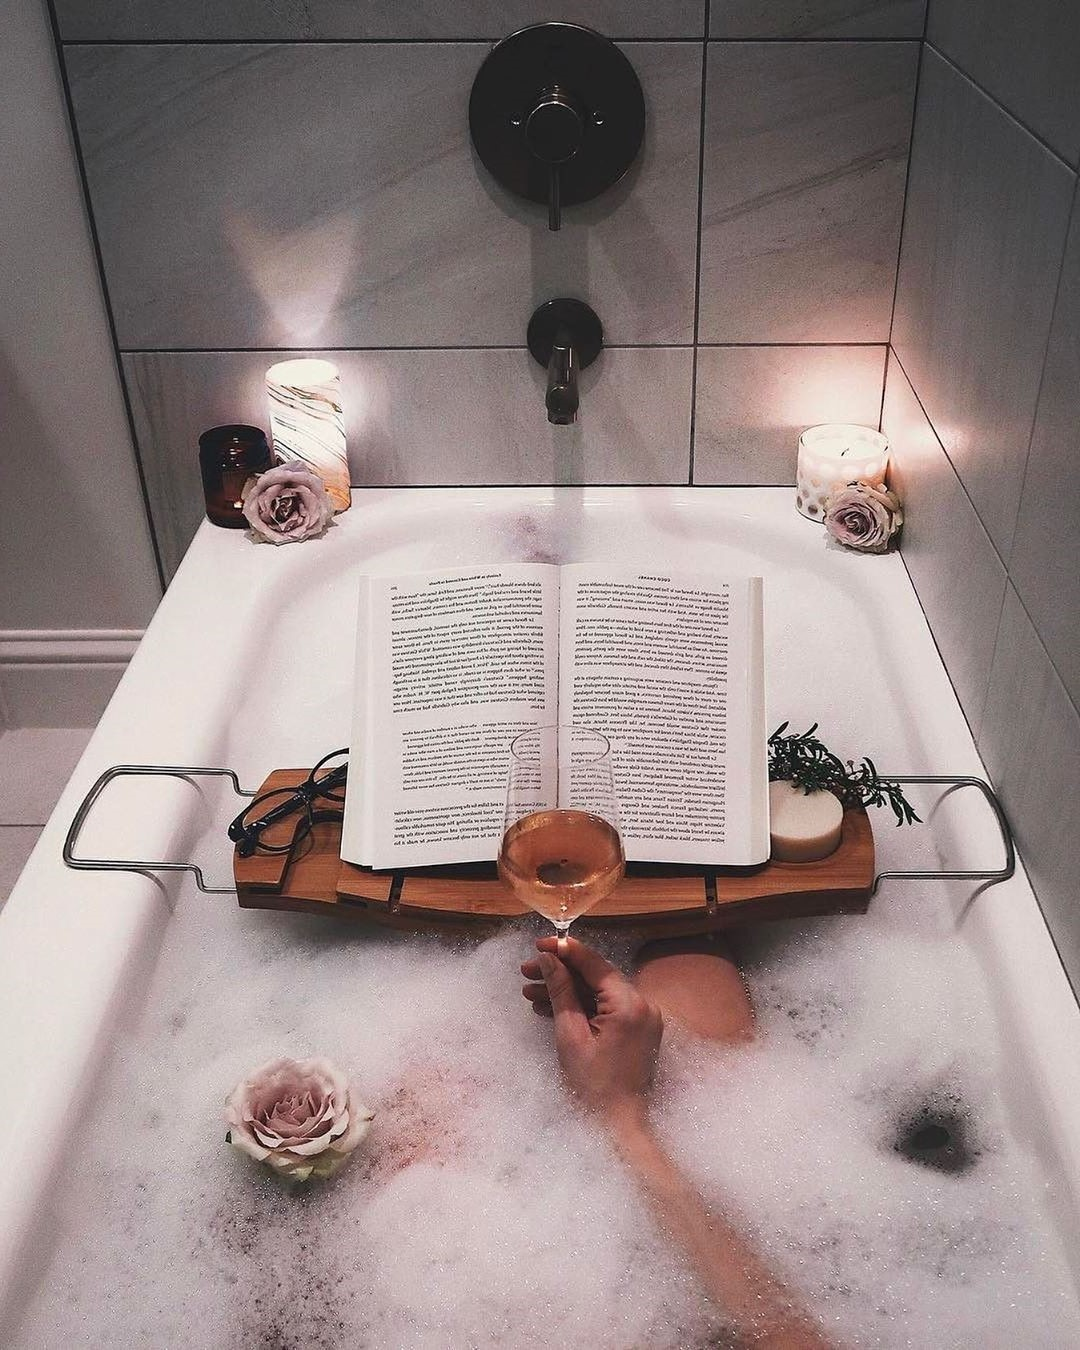 Take a hot bath | 8 Hygge Tips For The Coziest Winter Ever | Her Beauty